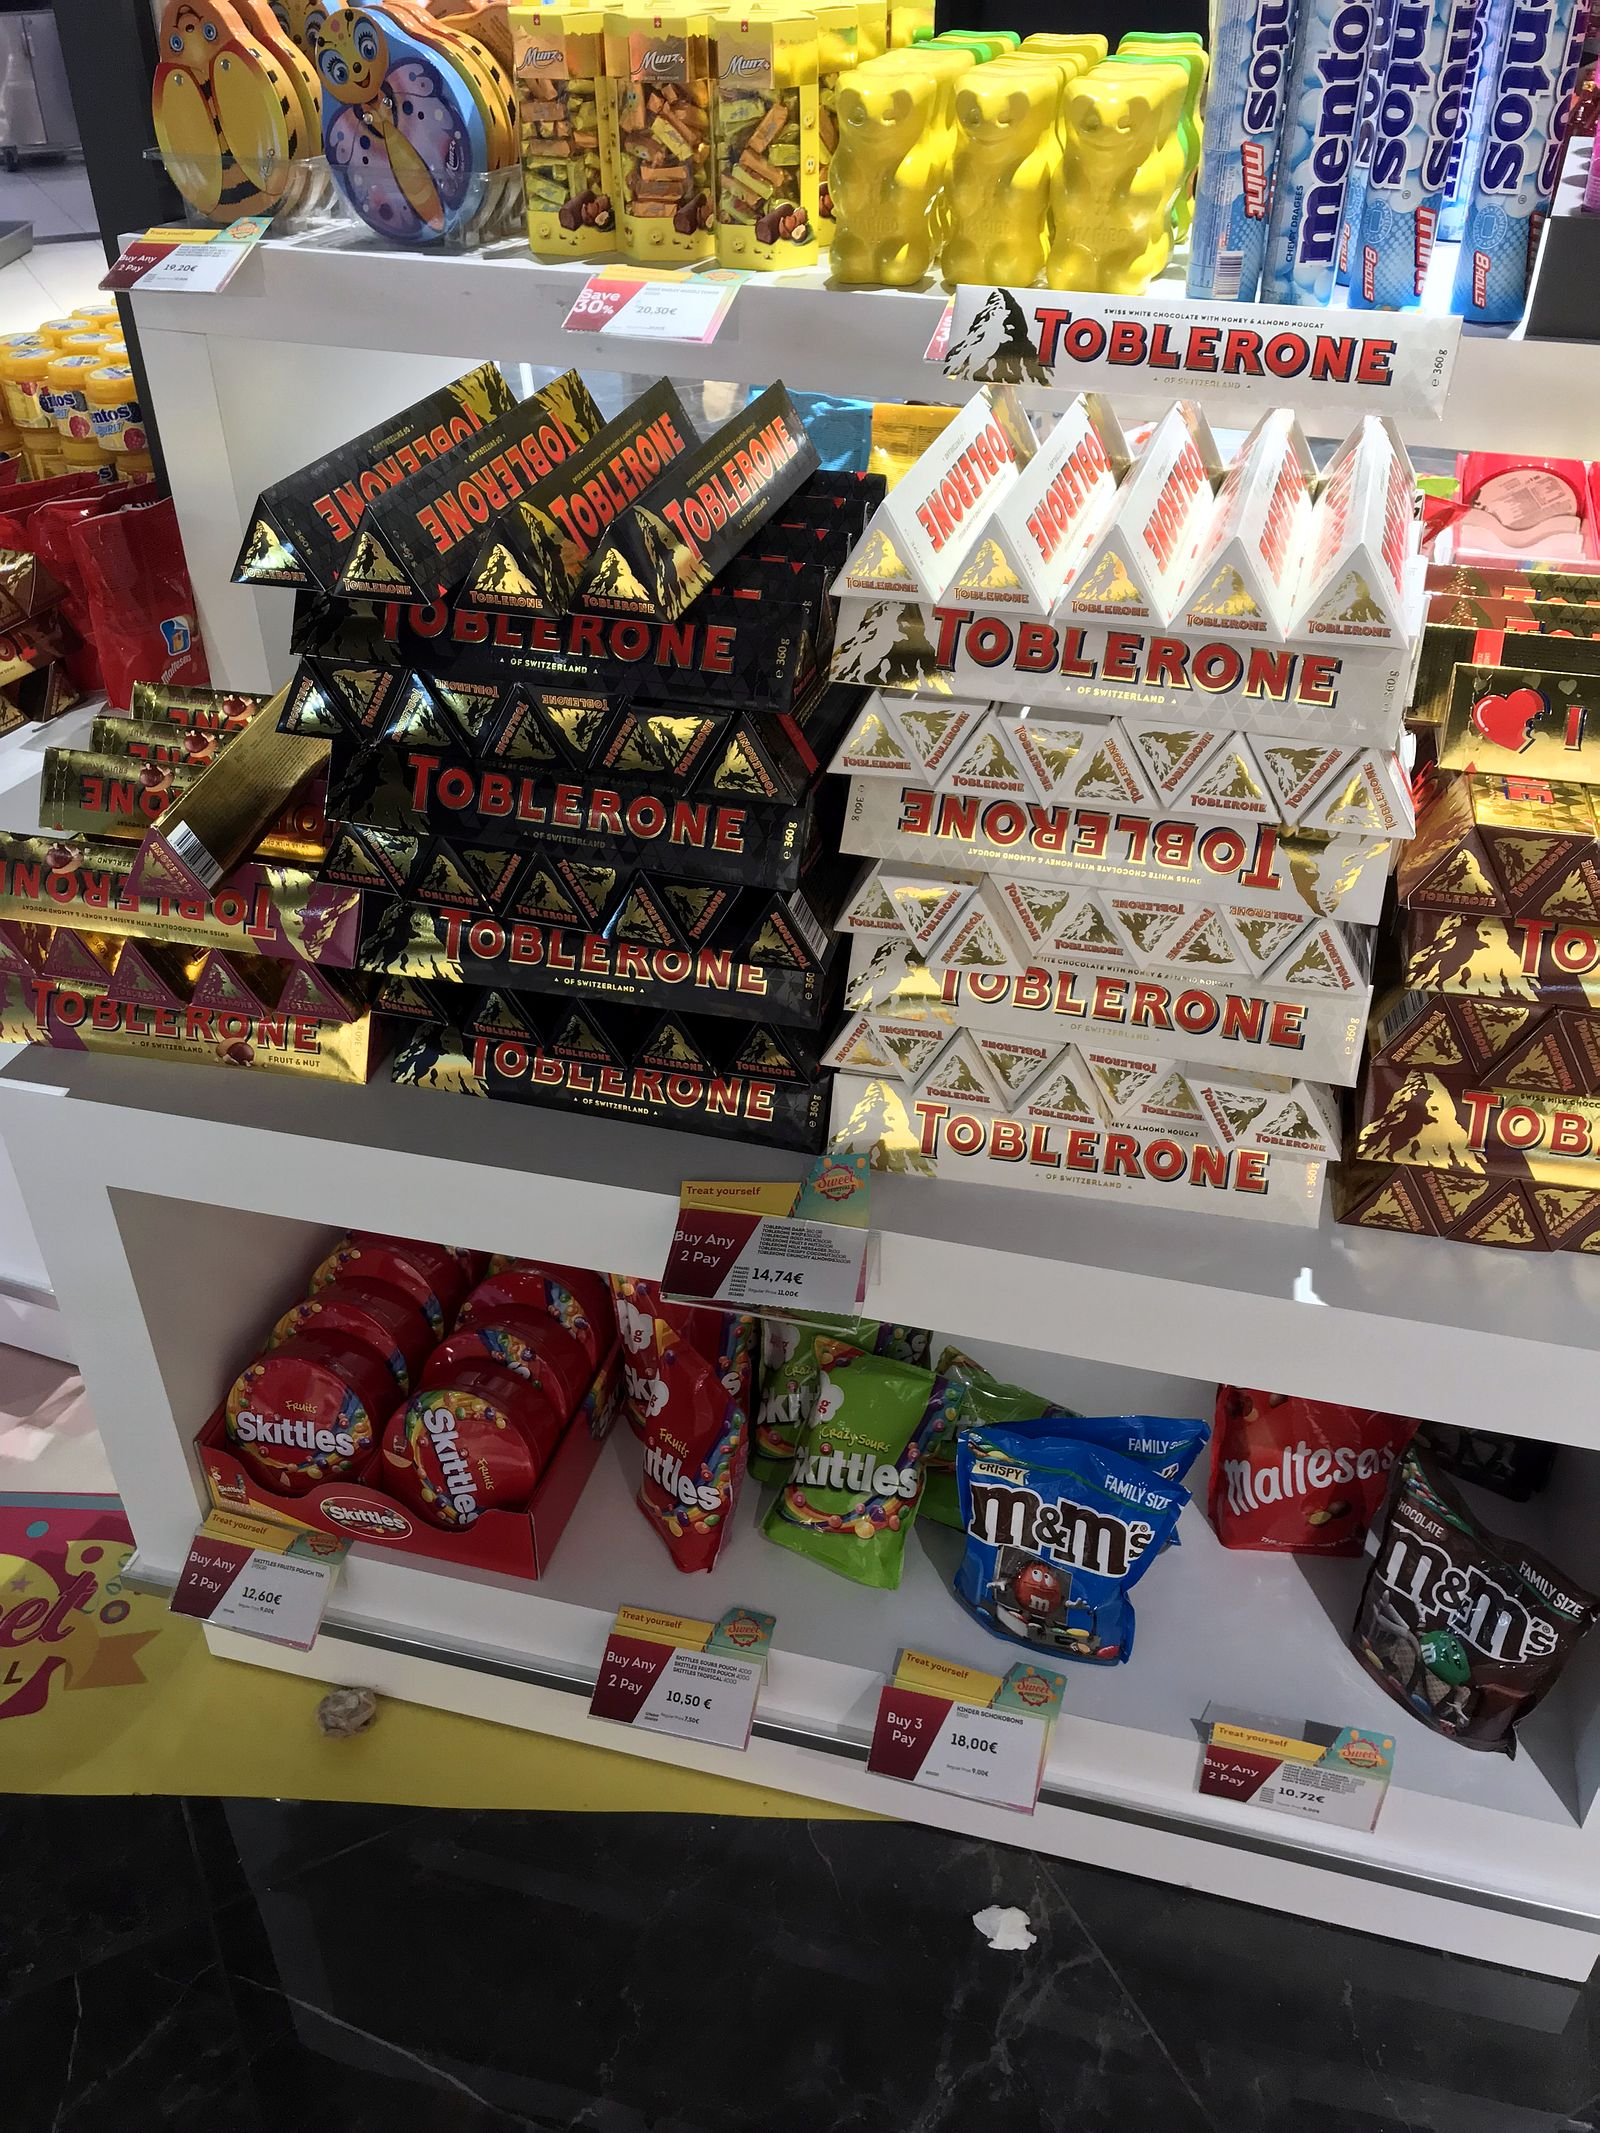 Duty free Antalya, august 2019, toblerone, skittles.